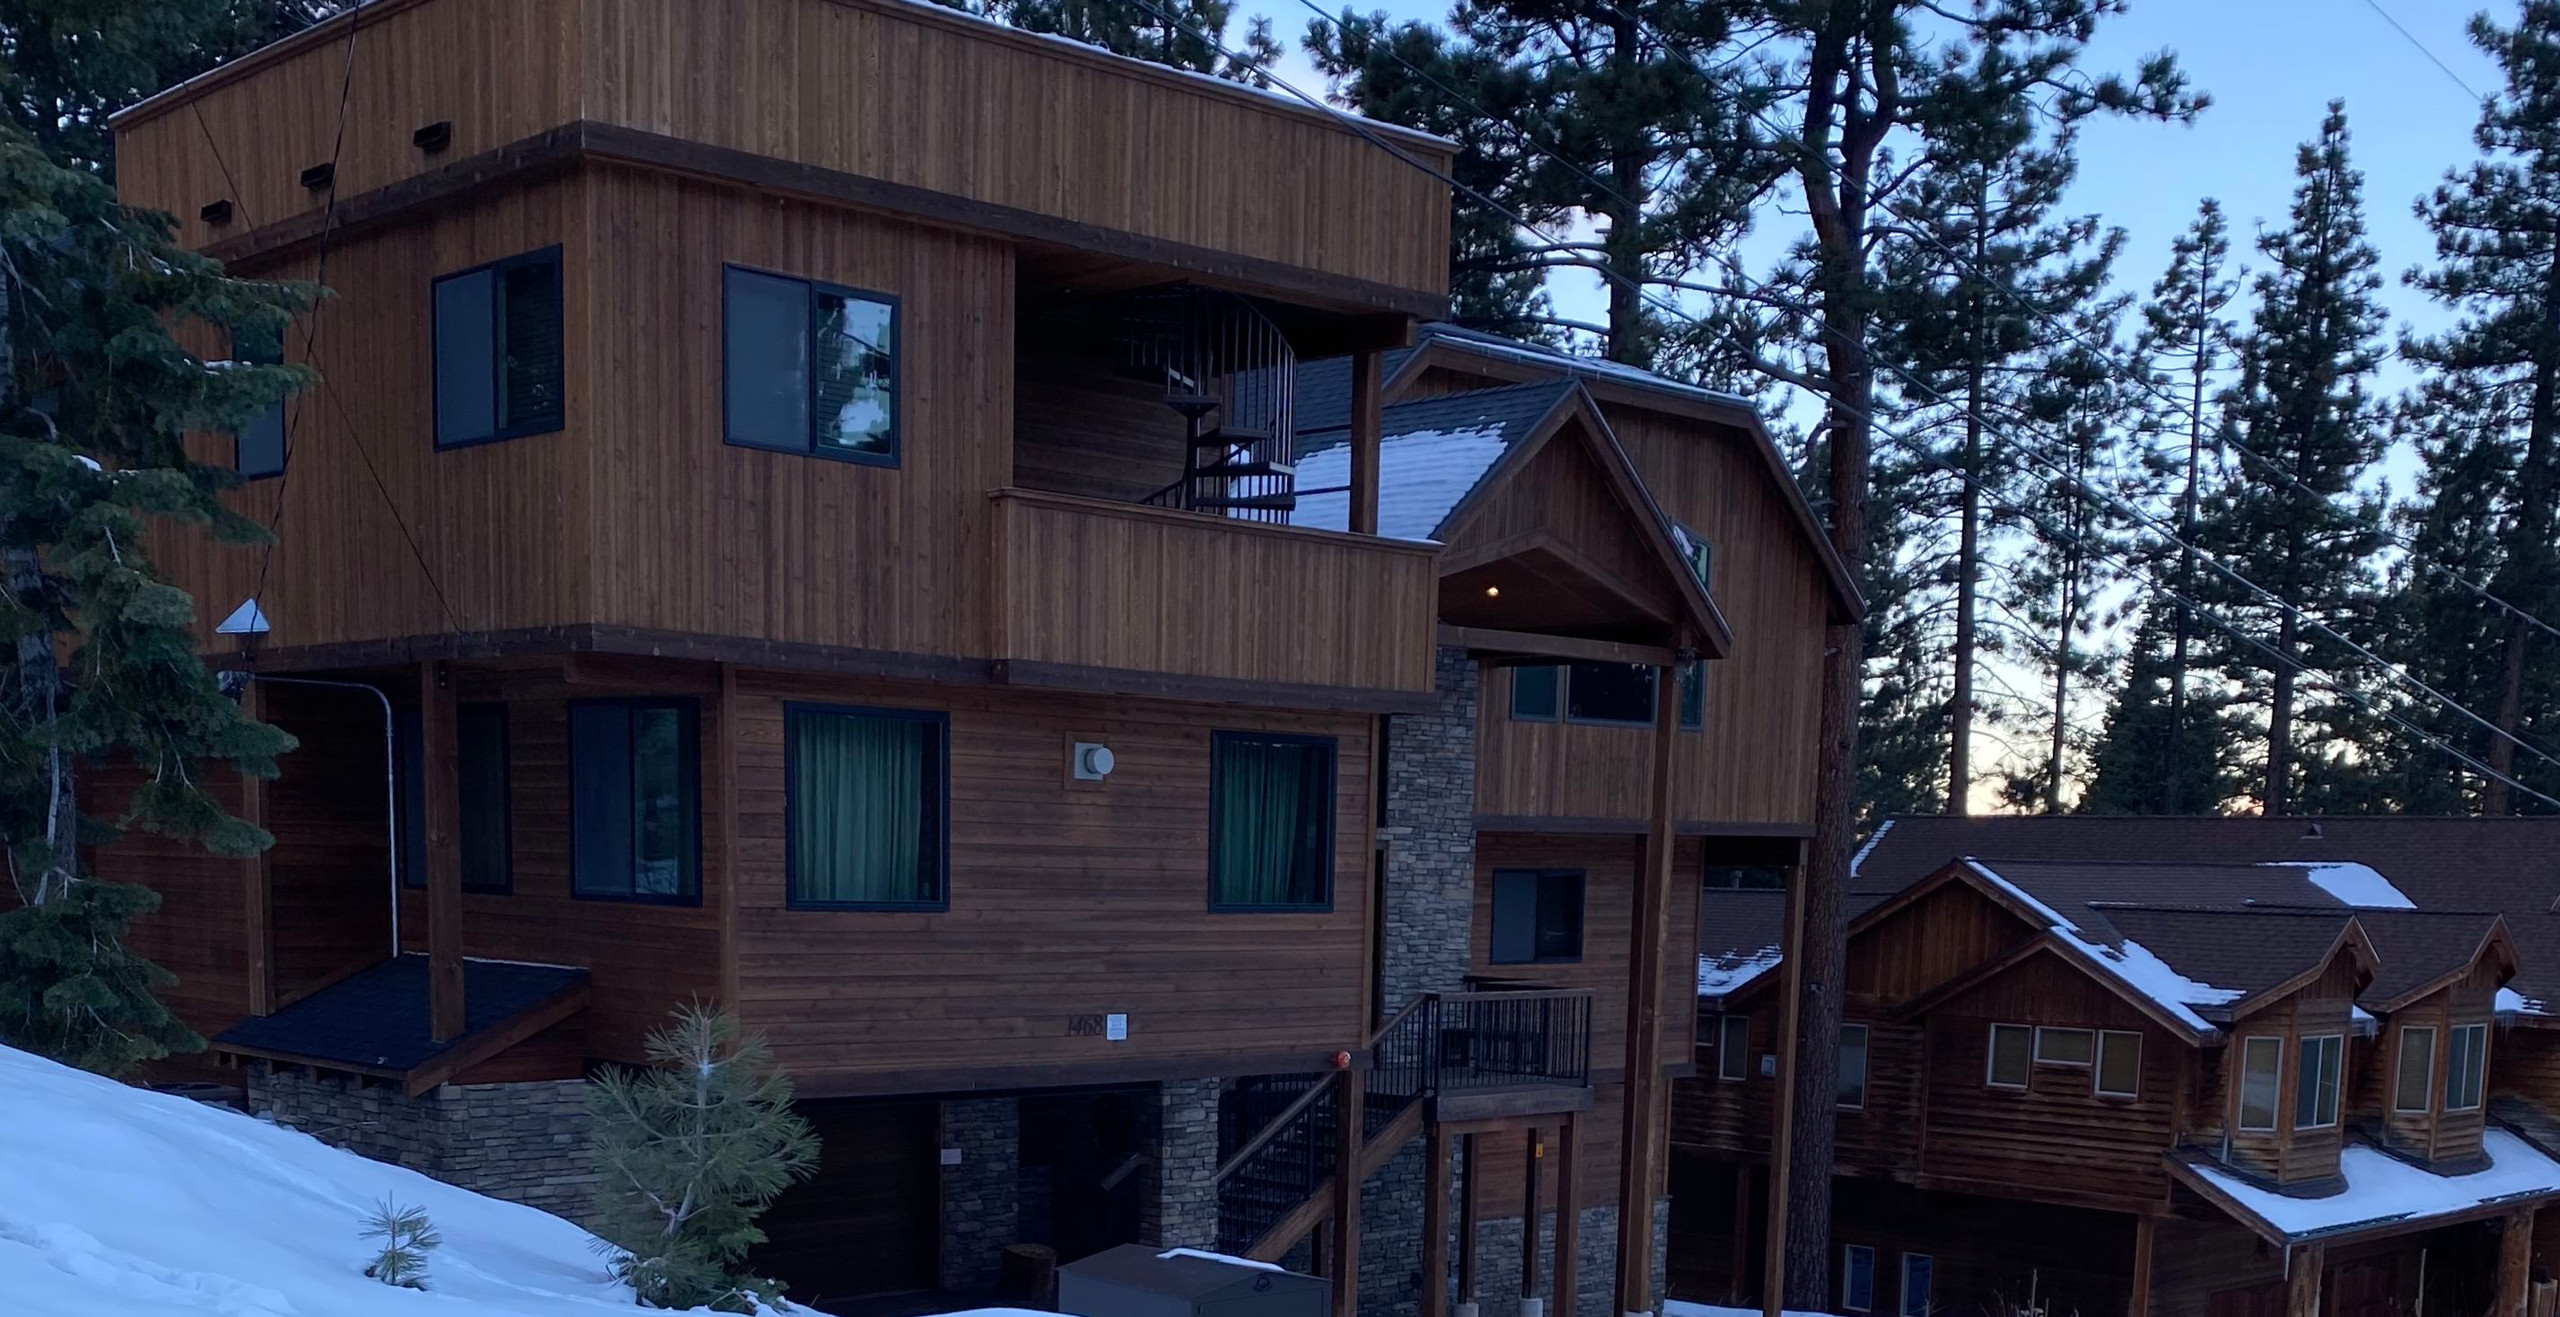 I thought this cabin was so nice